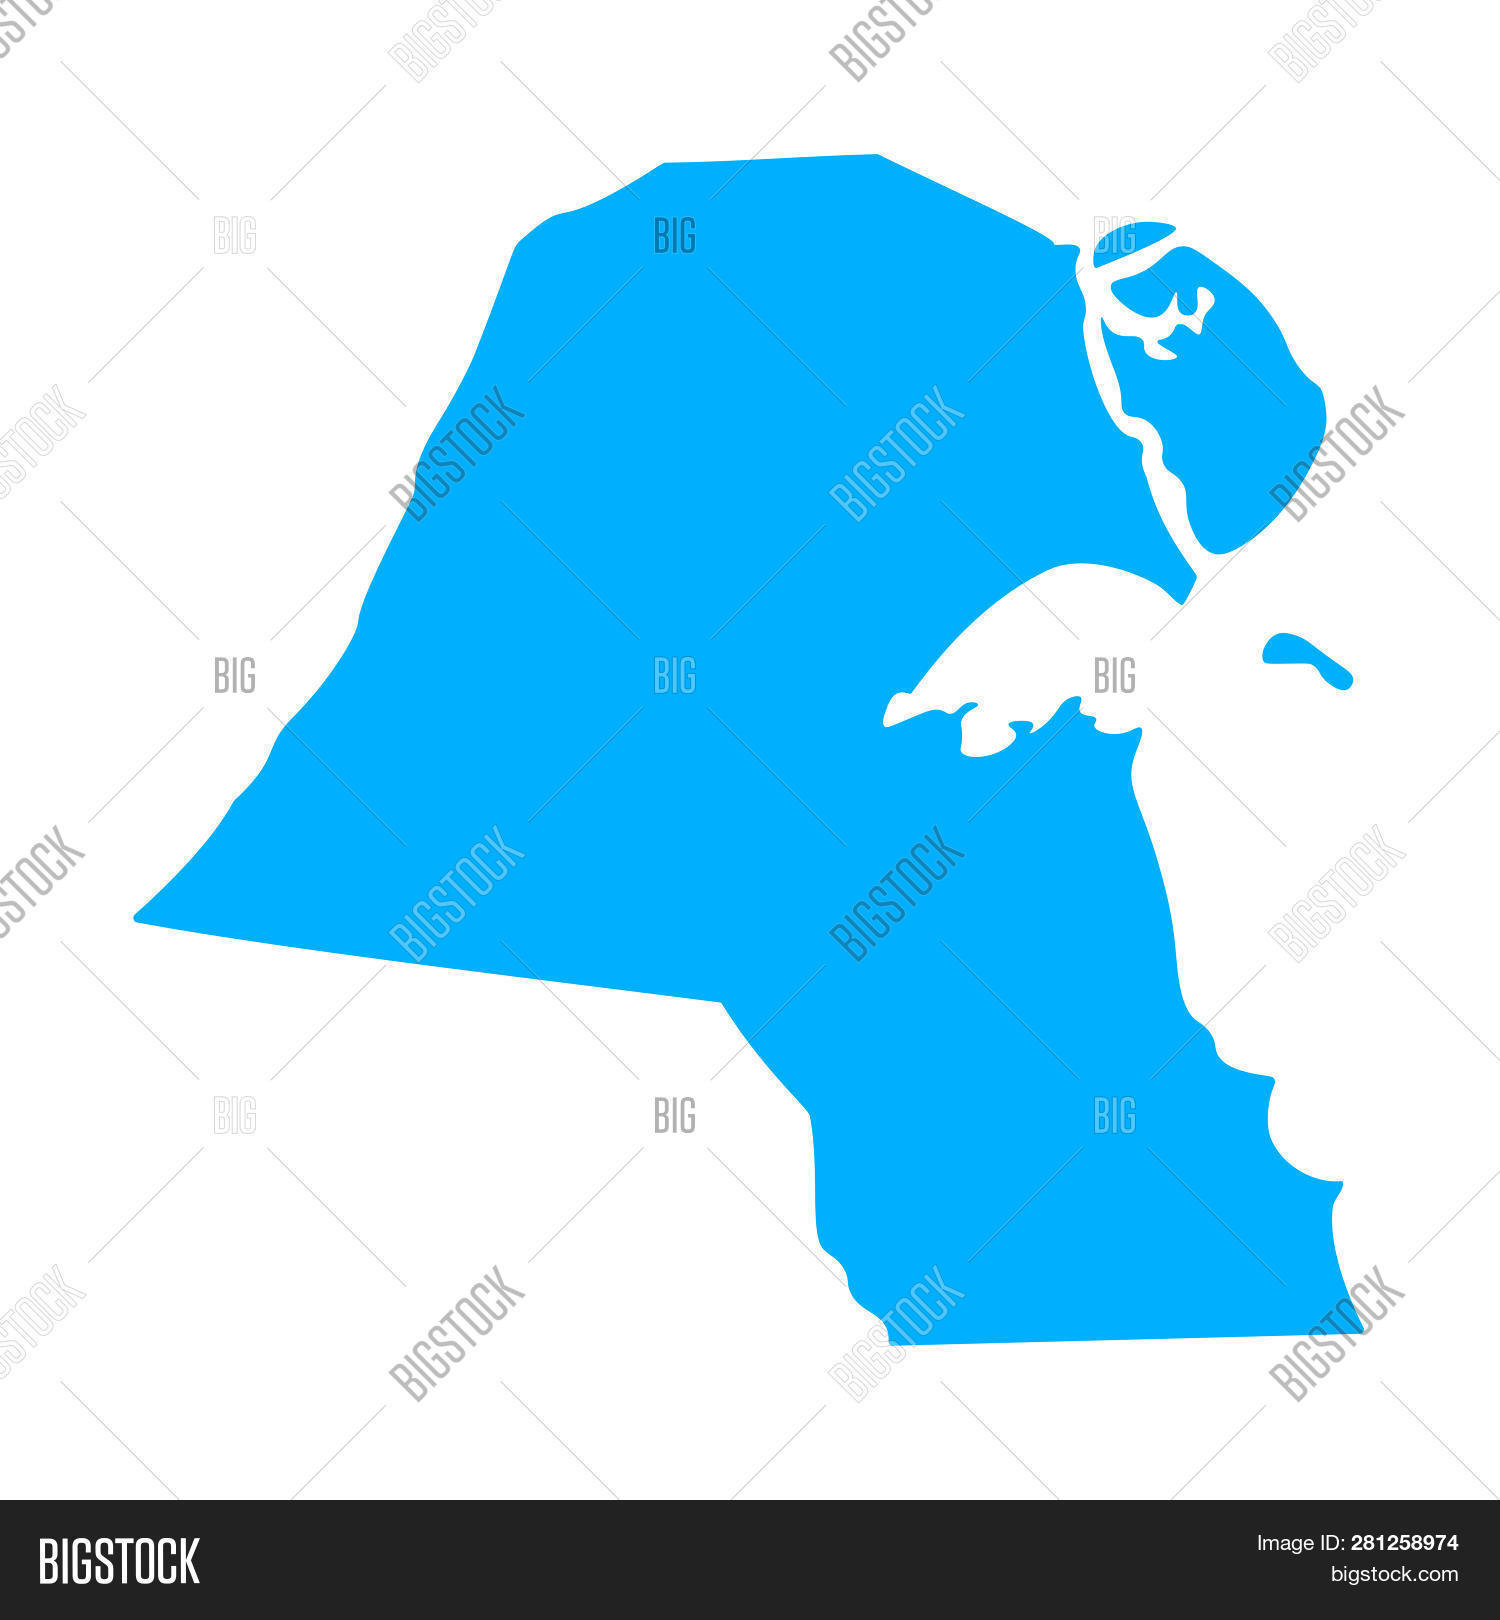 Map Kuwait - Outline. Image & Photo (Free Trial) | Bigstock